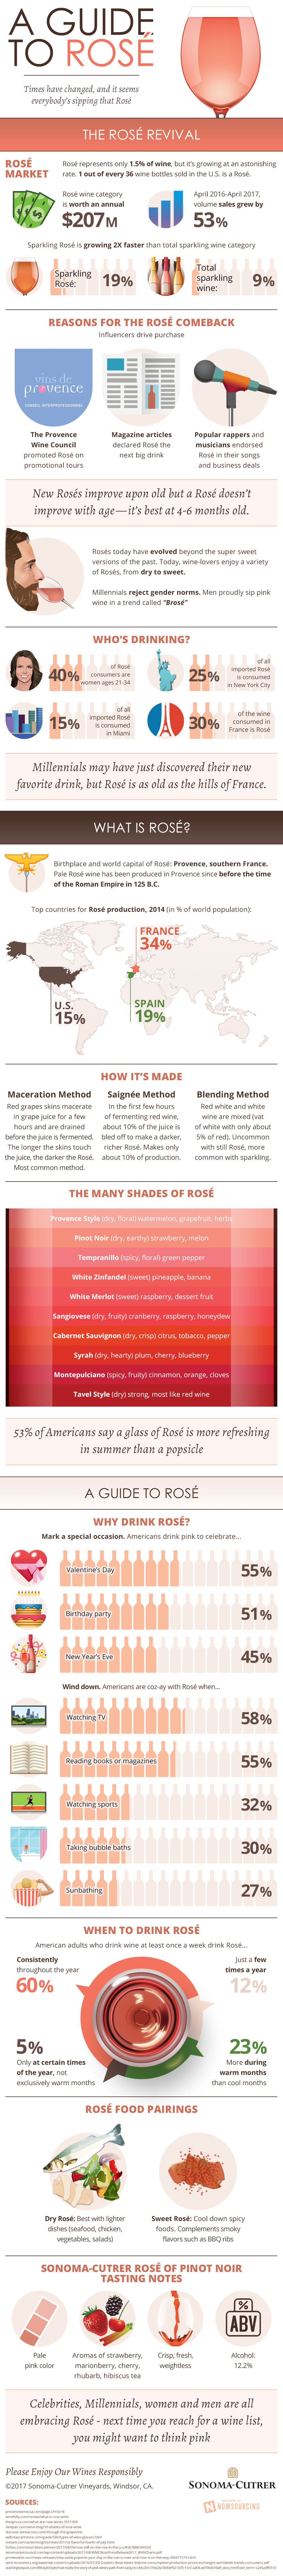 A Guide To Rosé